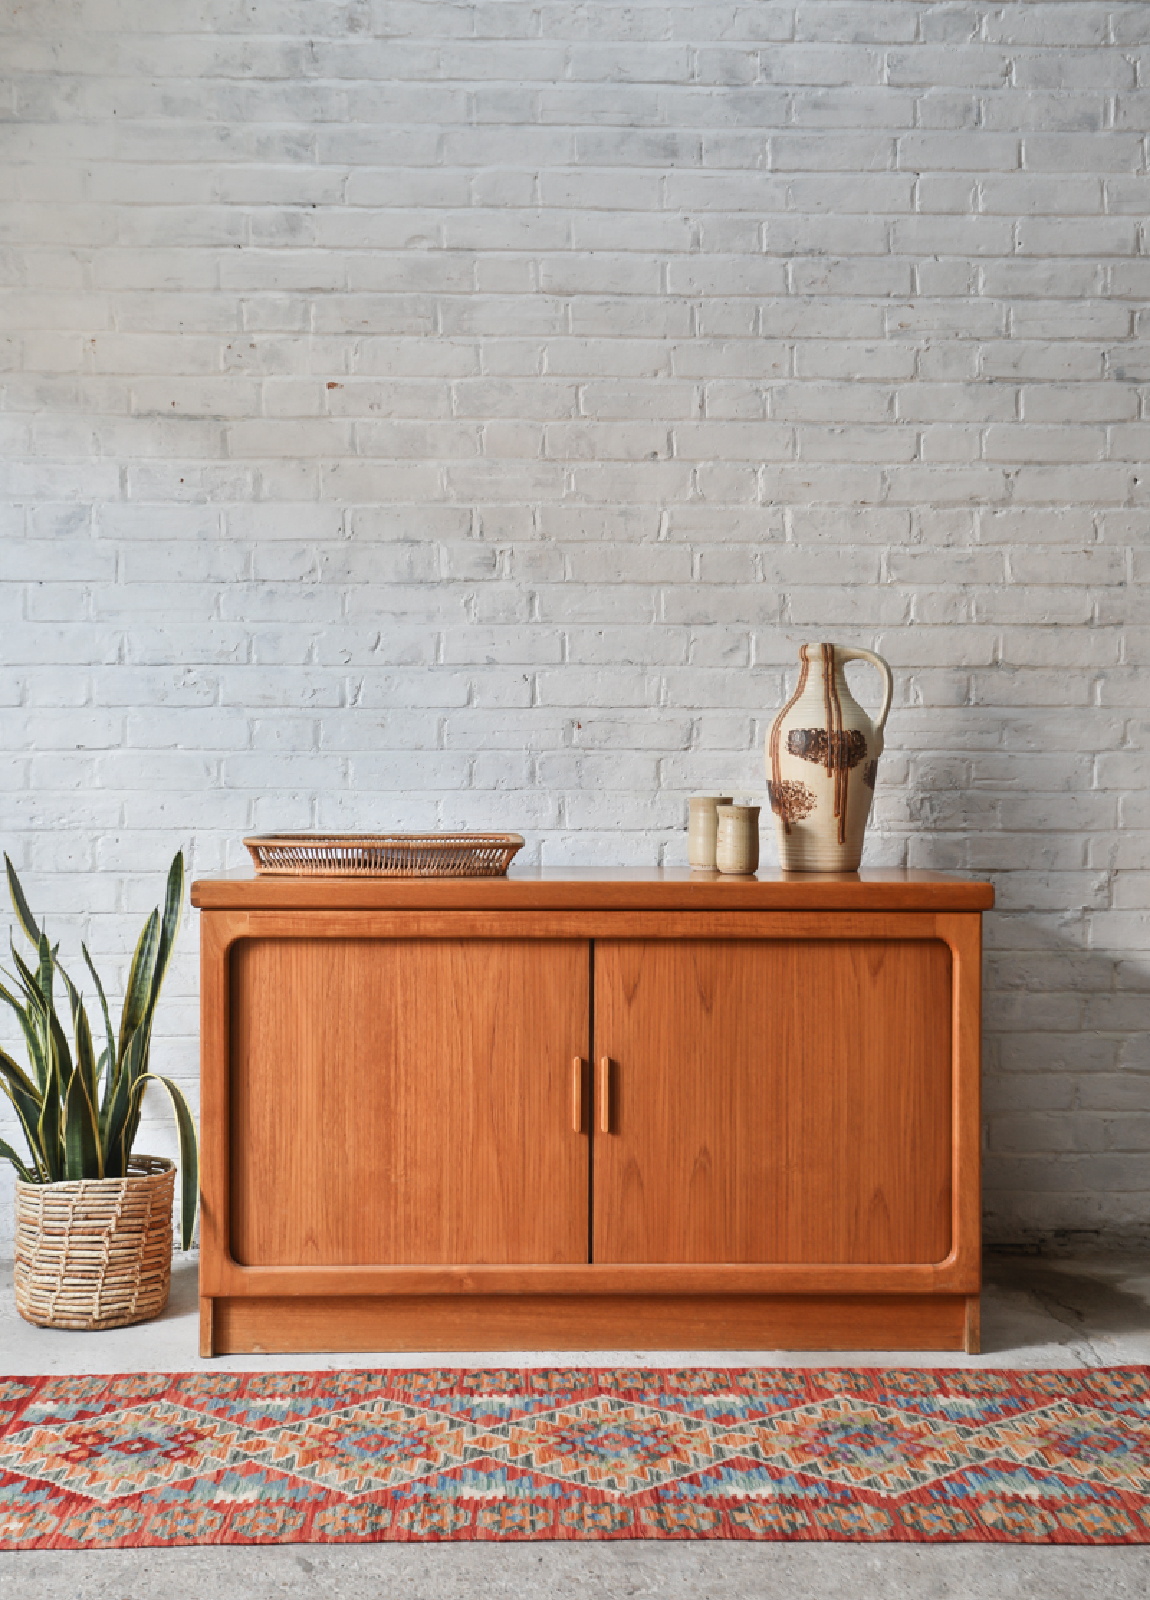 A mid-century cabinet and pottery